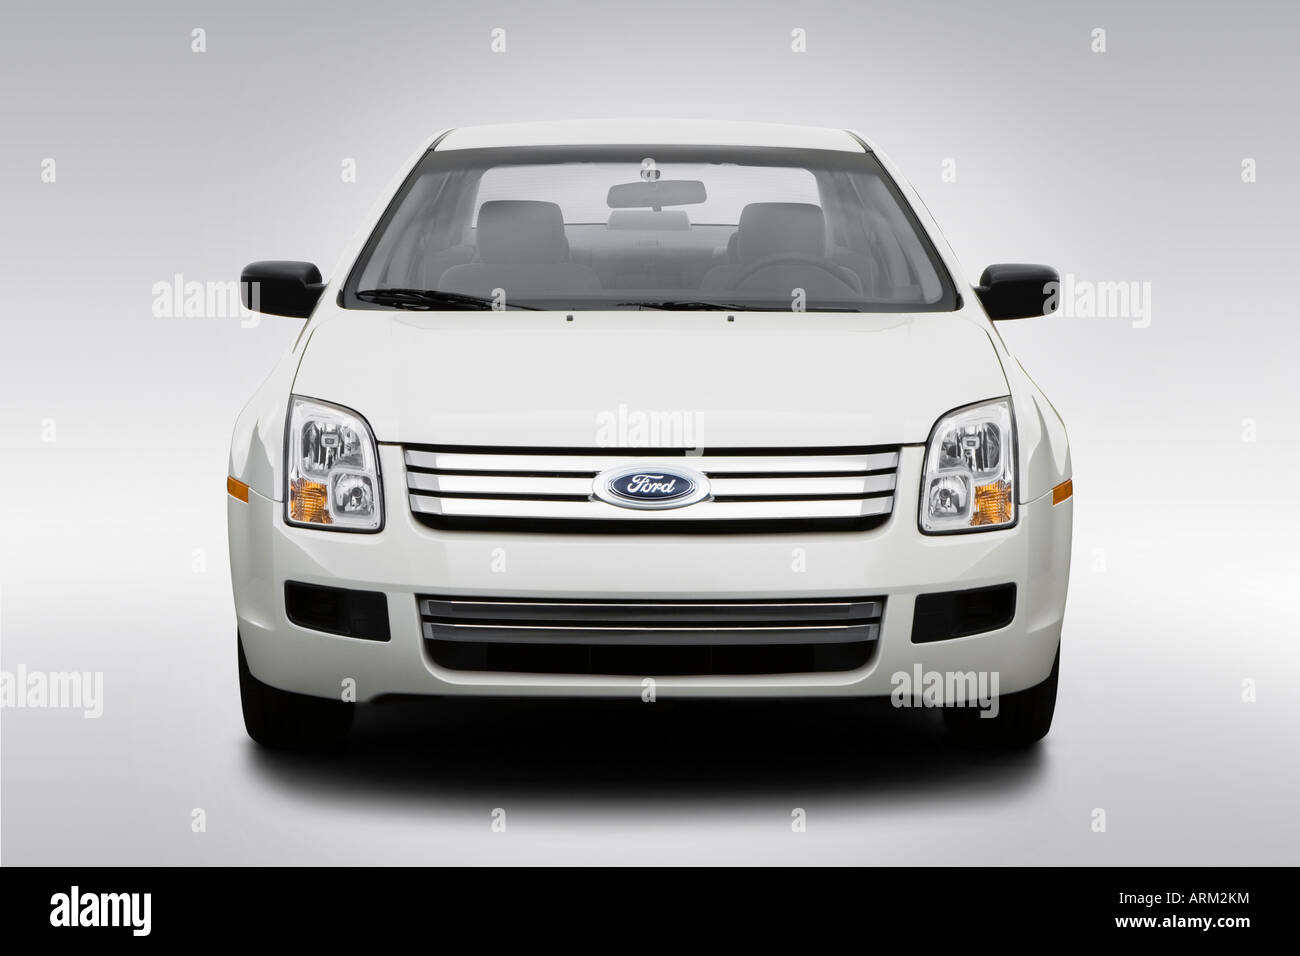 2008 Ford Fusion S in White - Low/Wide Front Stock Photo